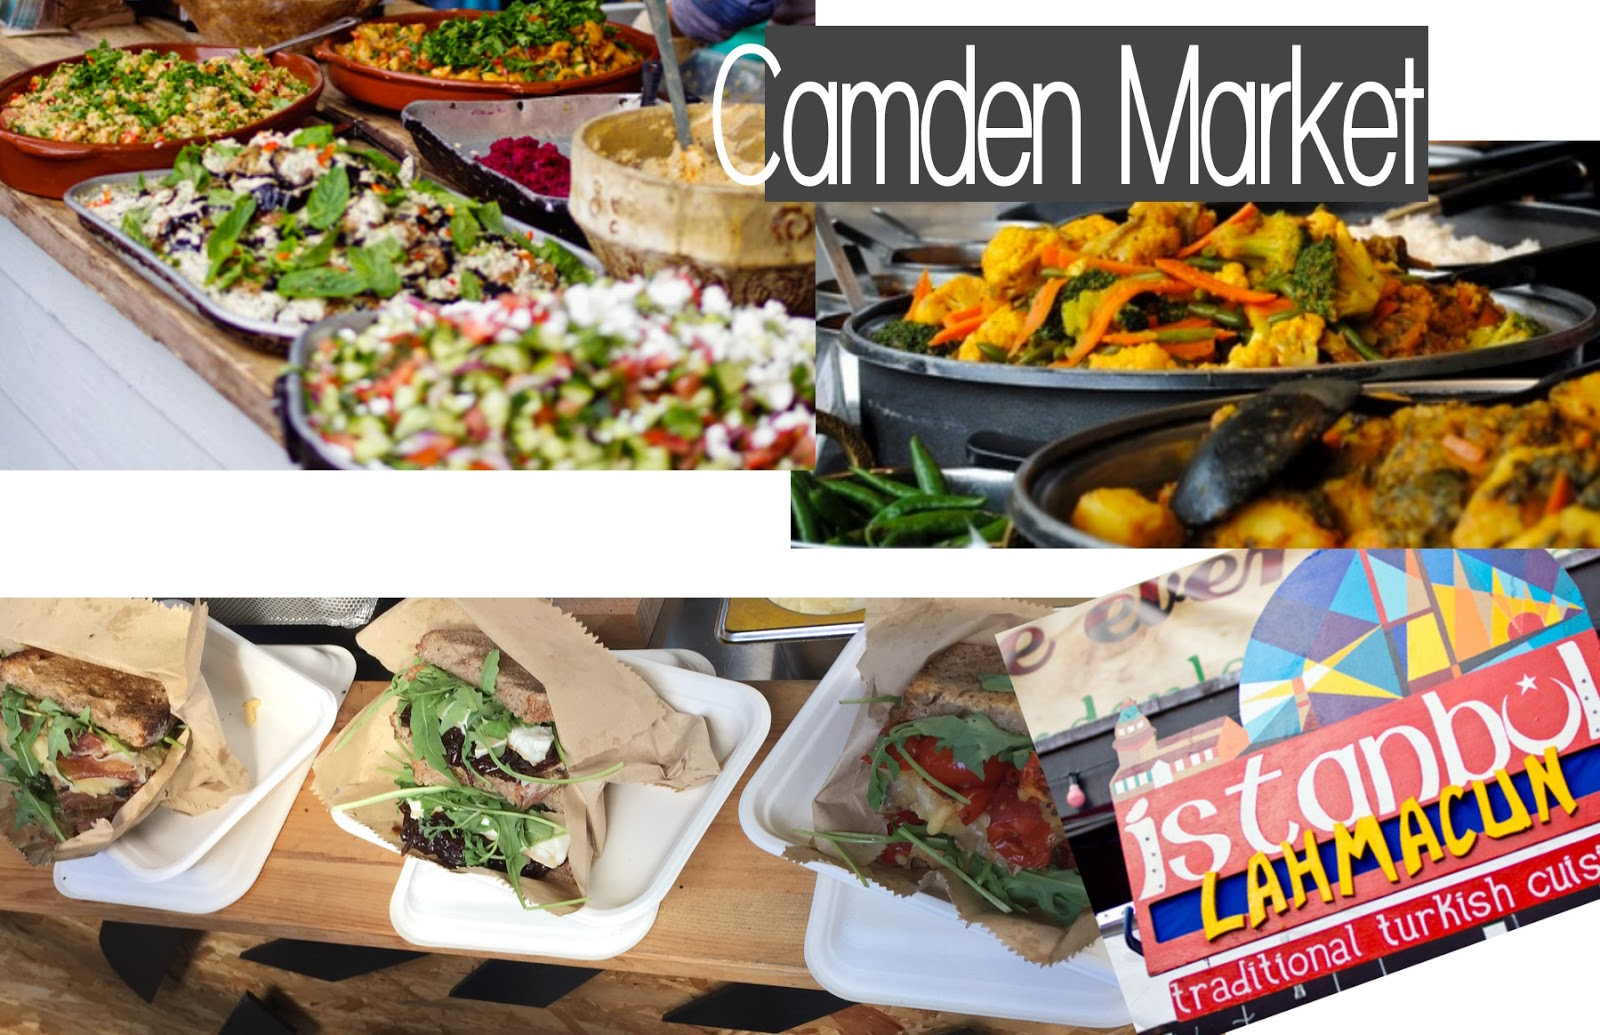 Food & Restaurants London Travel Guide Camden Market Food Stalls